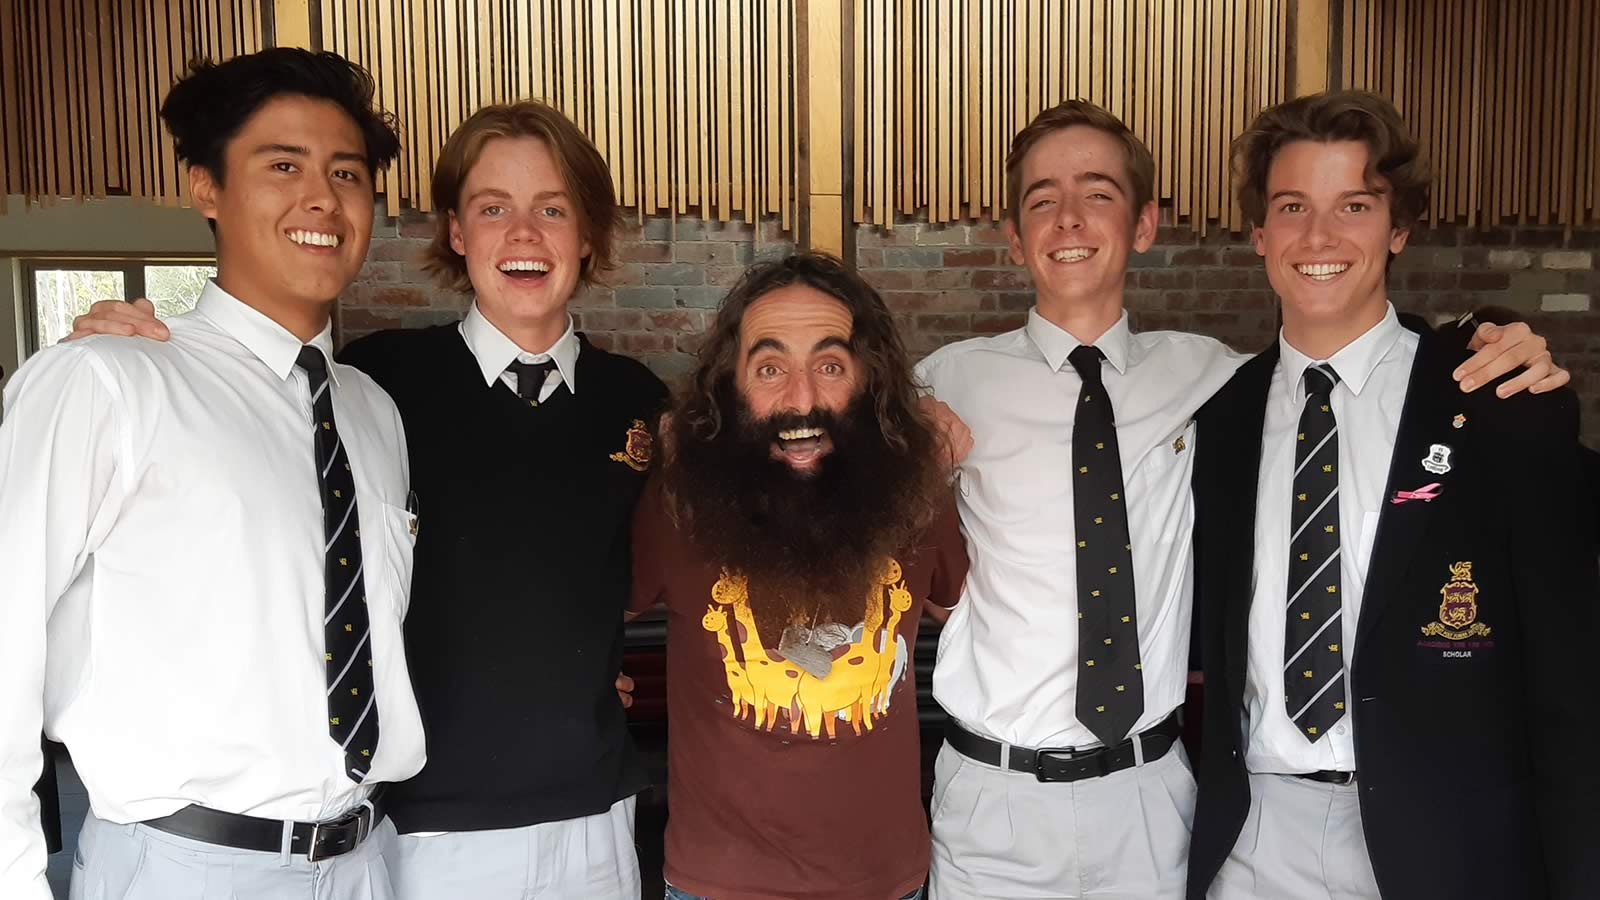 Year 12 students, Rhys Evans, Angus McIntosh, Cameron Urquhart, and Alex Stephens with Costa Georgiadis at the Tasmanian Youth Climate Leaders Conference.